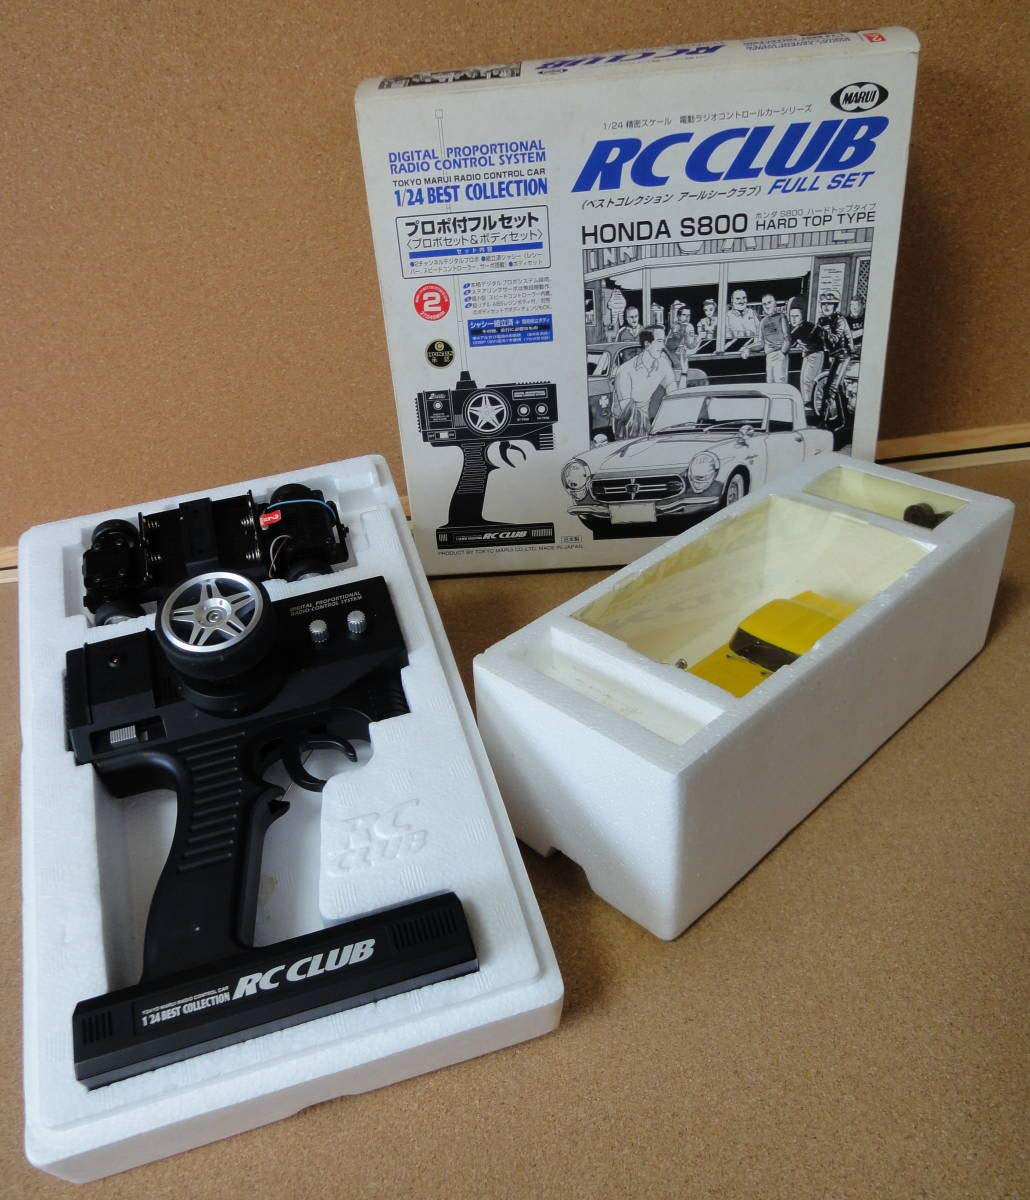 MARUI RC CLUB HONDA S800 HARO TOP TYPE 1/24 BEST COLLECTION プロポ付きフルセット ジャンク品 B07RZFS53F